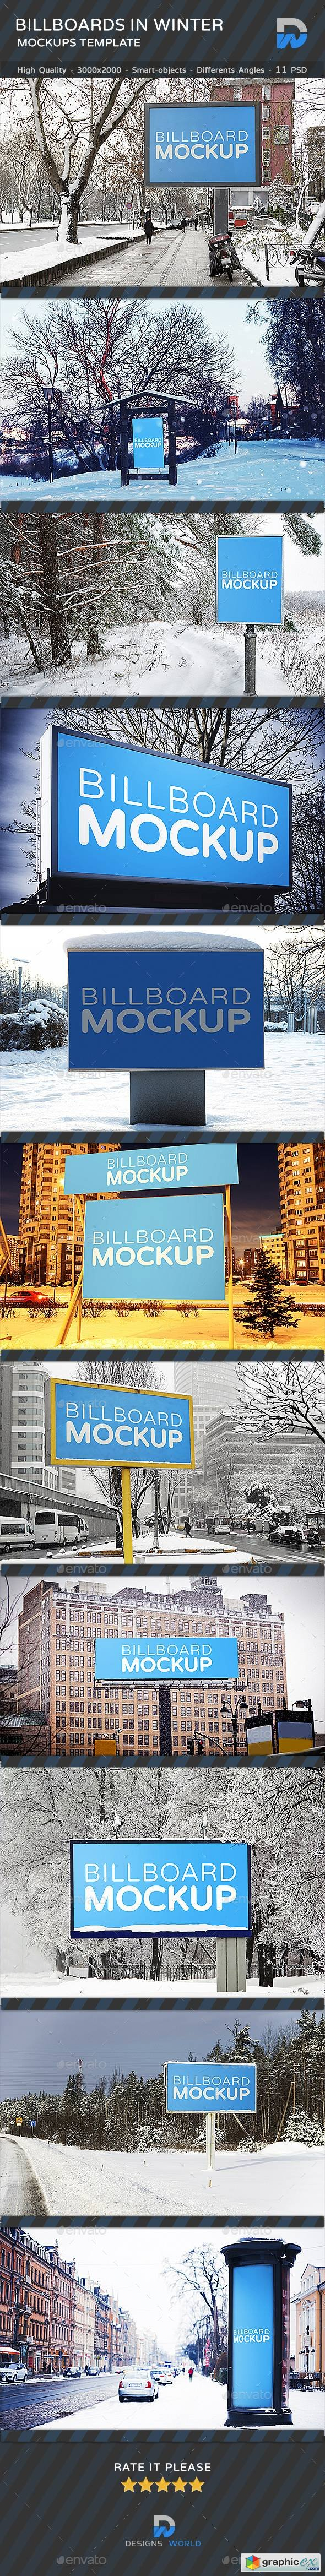 Billboards Mock-ups in Winter